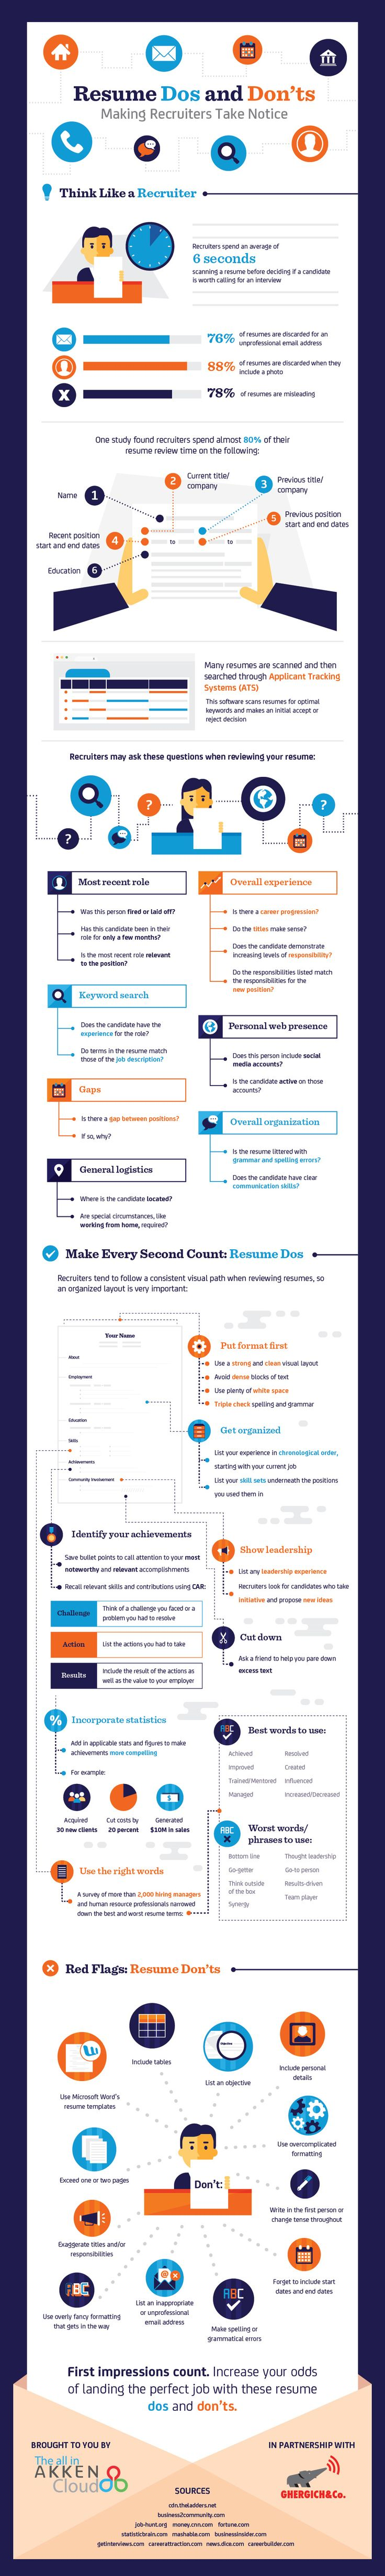 How to impress recruiters resume dos and donts job